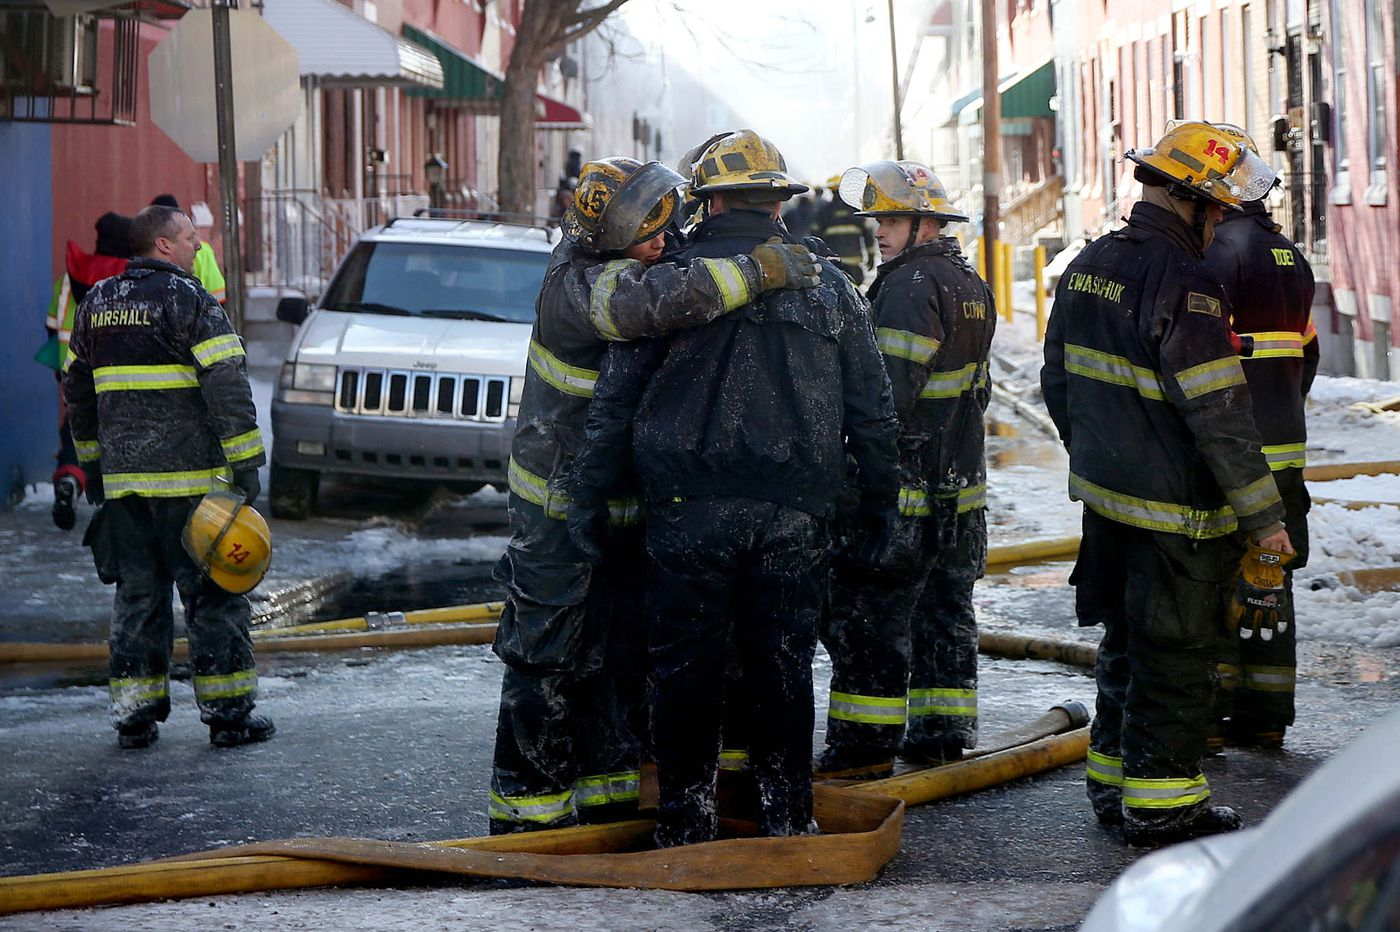 Cold weather and clutter hindered the response to a 2018 North Philly blaze that killed a firefighter, new reports find